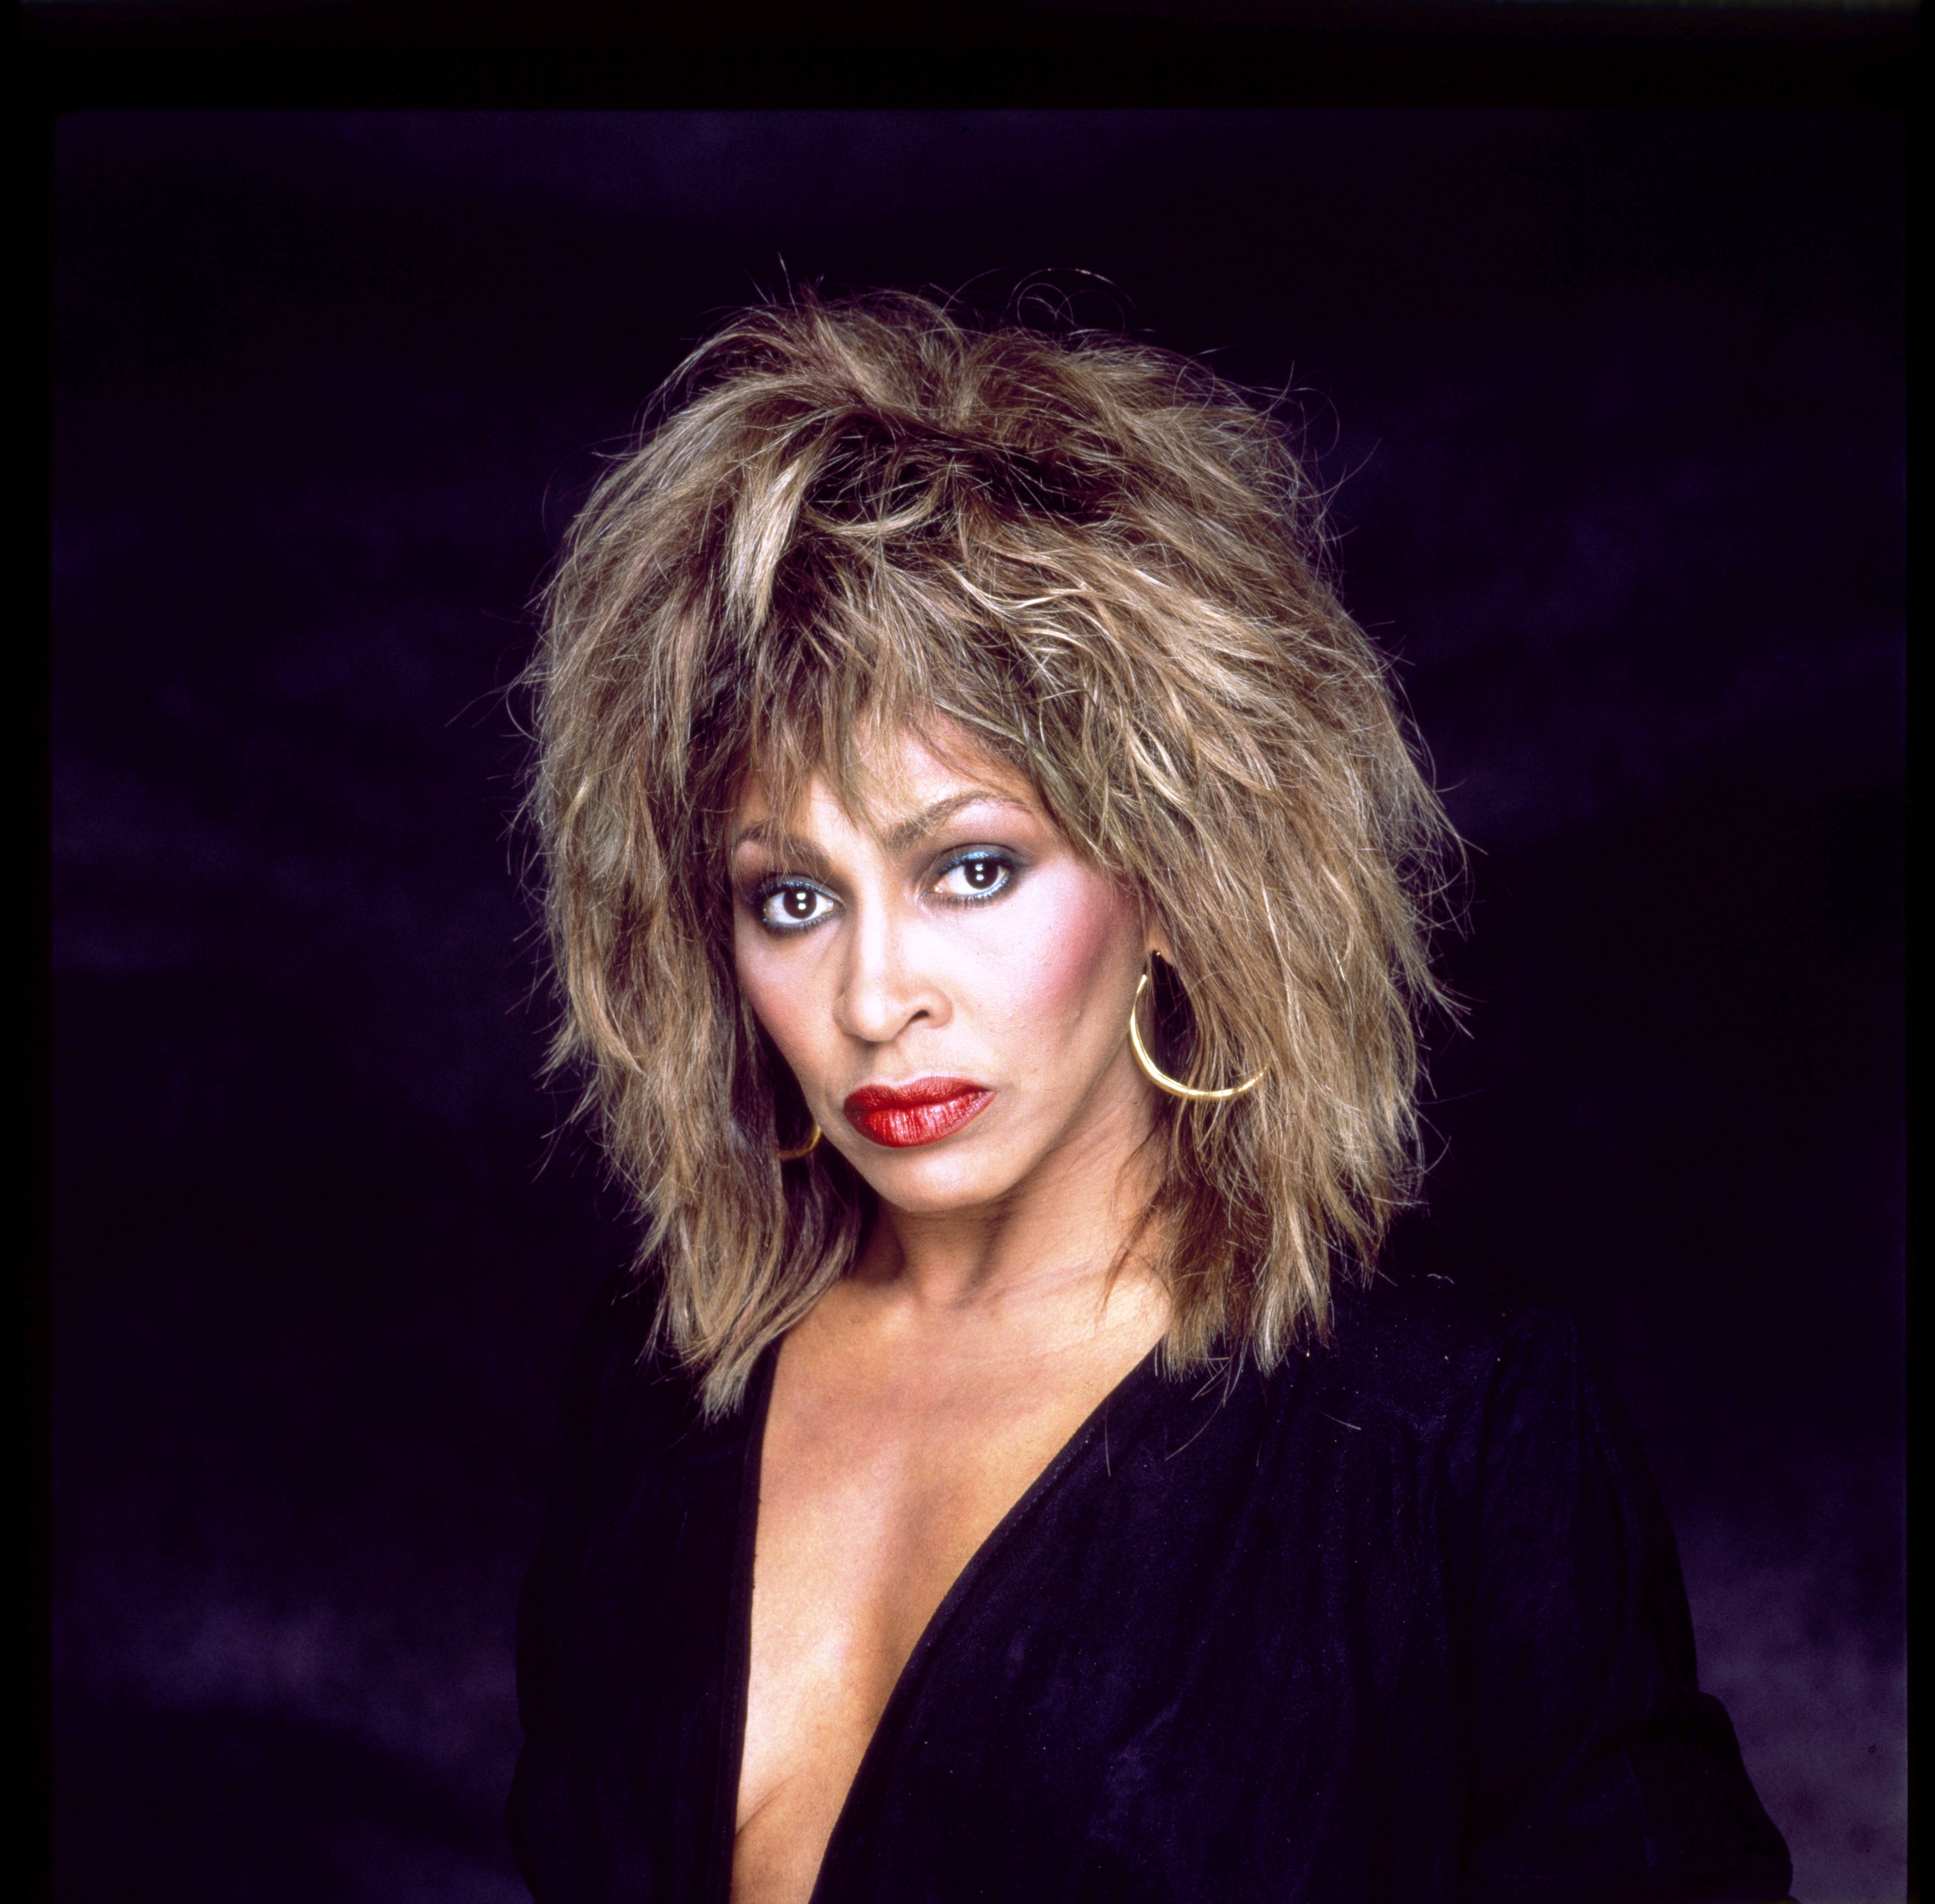 Tina Turner photo #308160